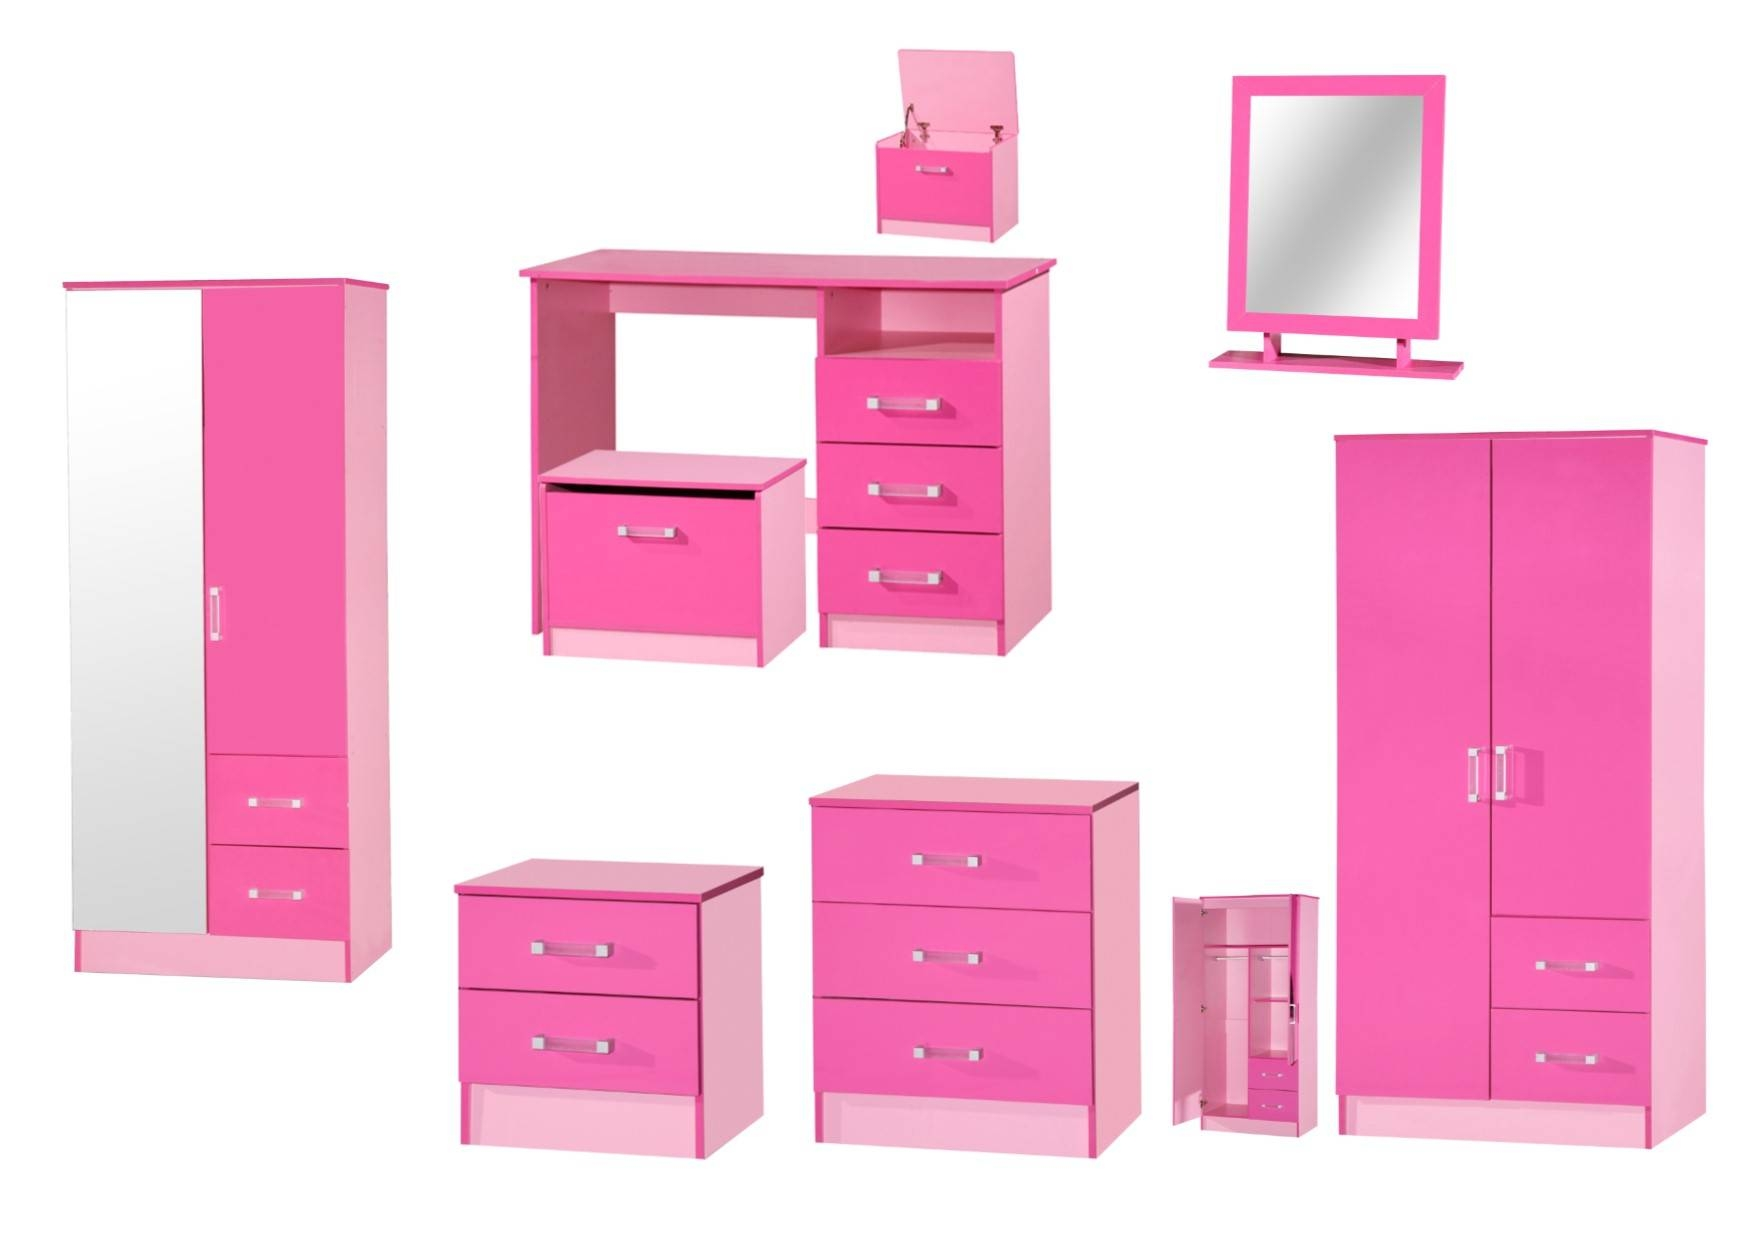 Marina Pink High Gloss Bedroom Furniture - Sets Wardrobe Drawers intended for Pink High Gloss Wardrobes (Image 11 of 15)